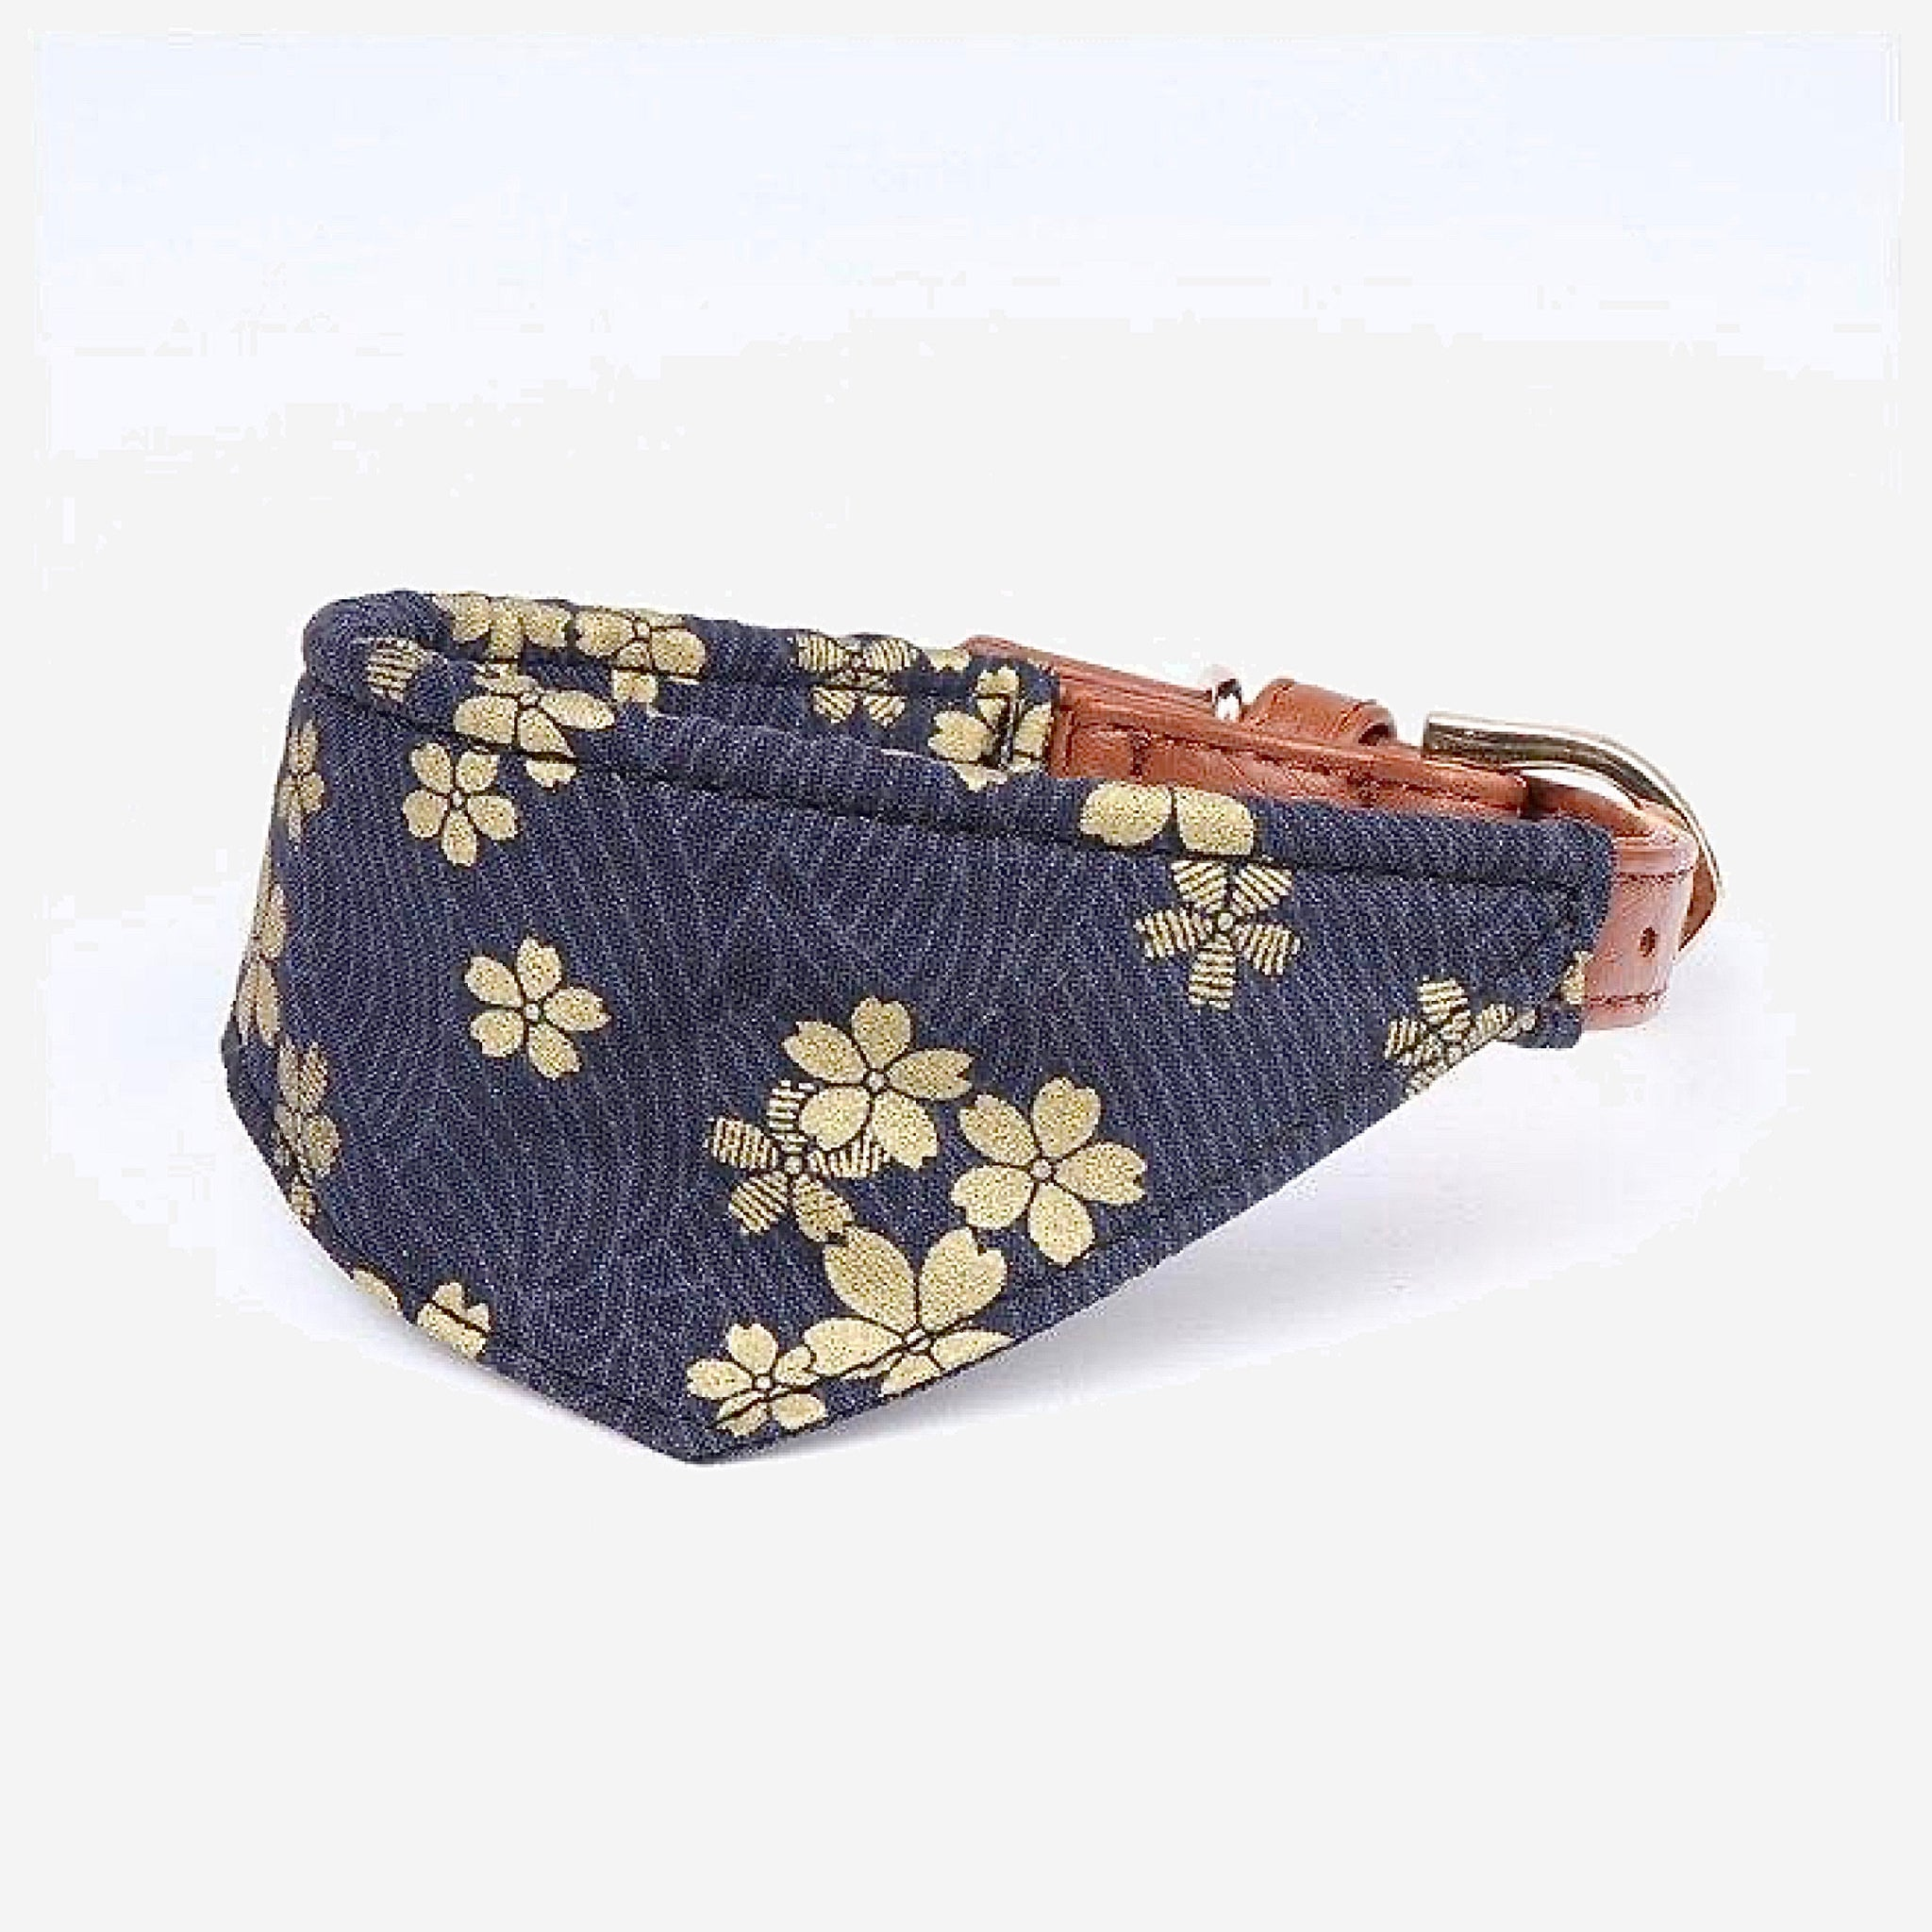 Japanese Bandana Pet Collar    Made of leather buckle design fine workmanship triangle scarf Japan pets supplies for cats and dogs Blue Cherry Blossom Trend